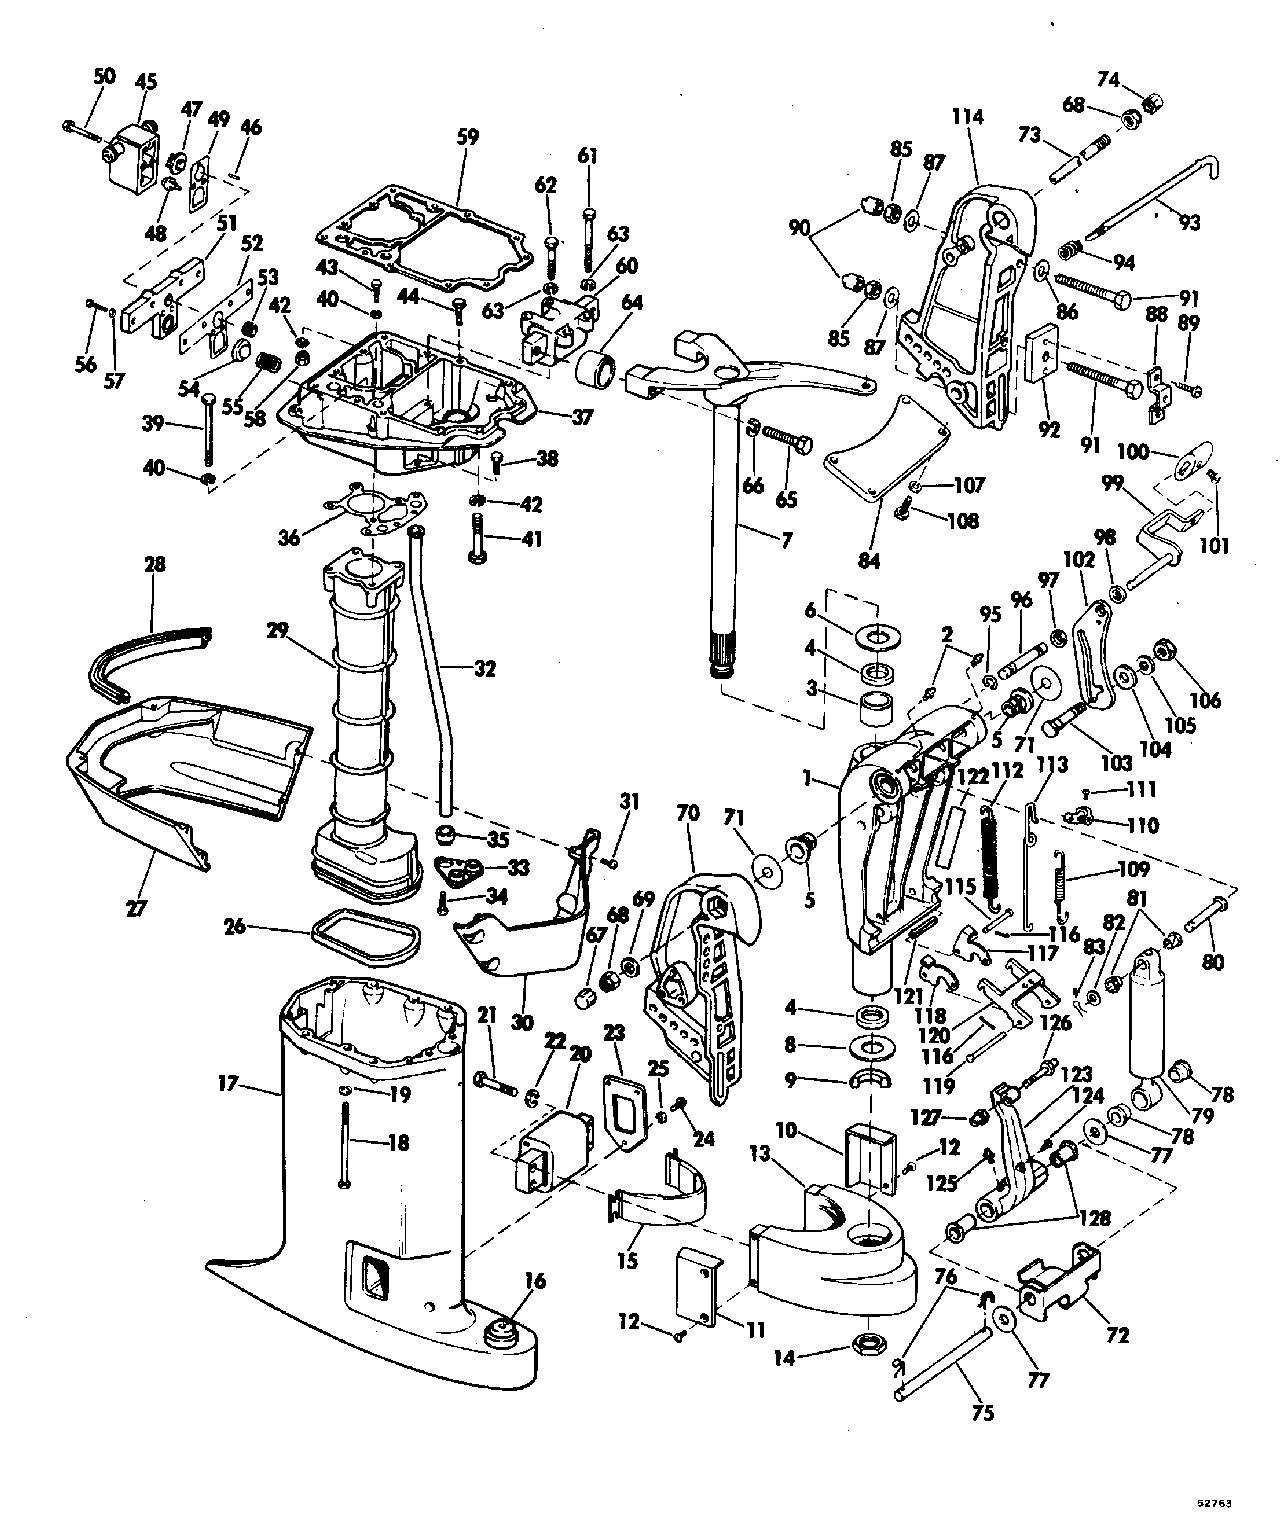 Evinrude Outboard Motors Fuel Pump Diagram Reinvent Your Wiring Brp Ignition Switch Cooling Water Flow Rh Coolingwaterwakizai Blogspot Com Engine 25 Hp